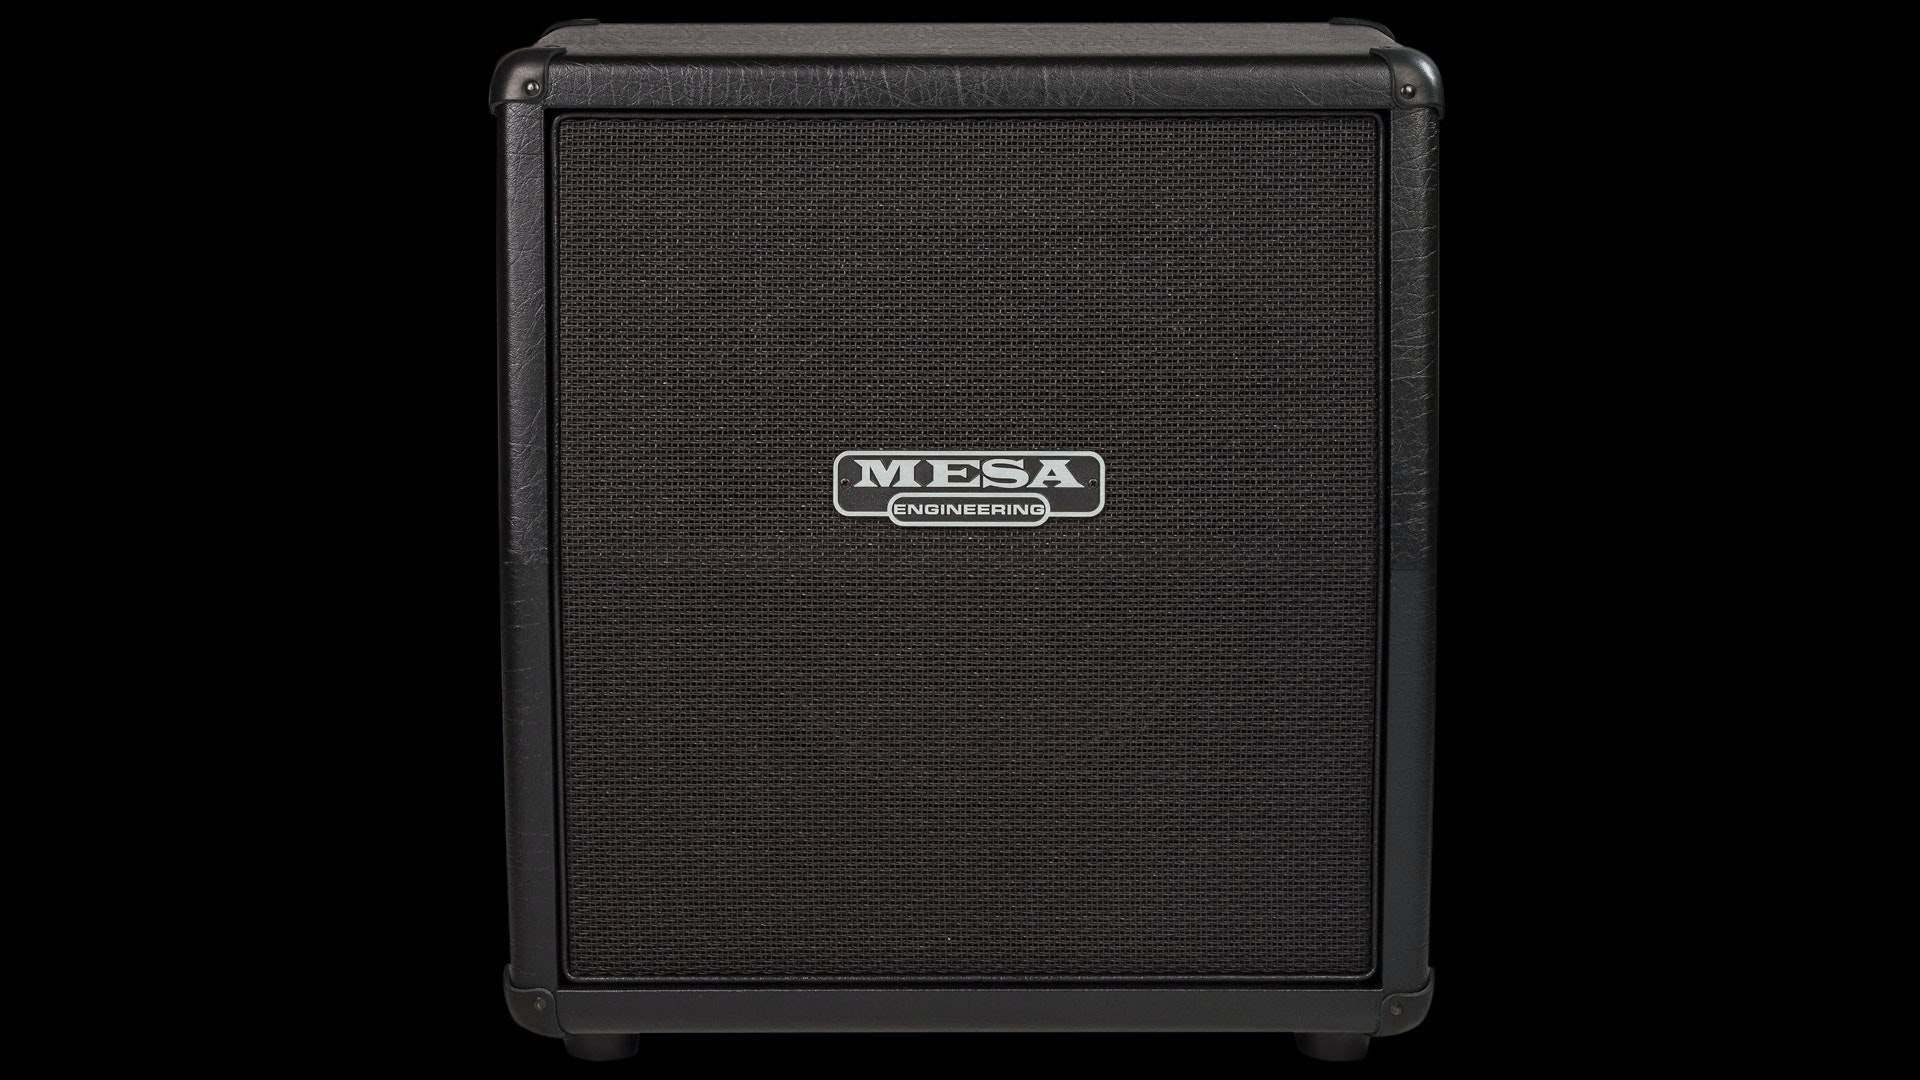 Mesa Boogie 2x12 Wiring Diagram Not Lossing Guitar Cabinet Library Rh 48 Premium Lose De Avatar Contemporary